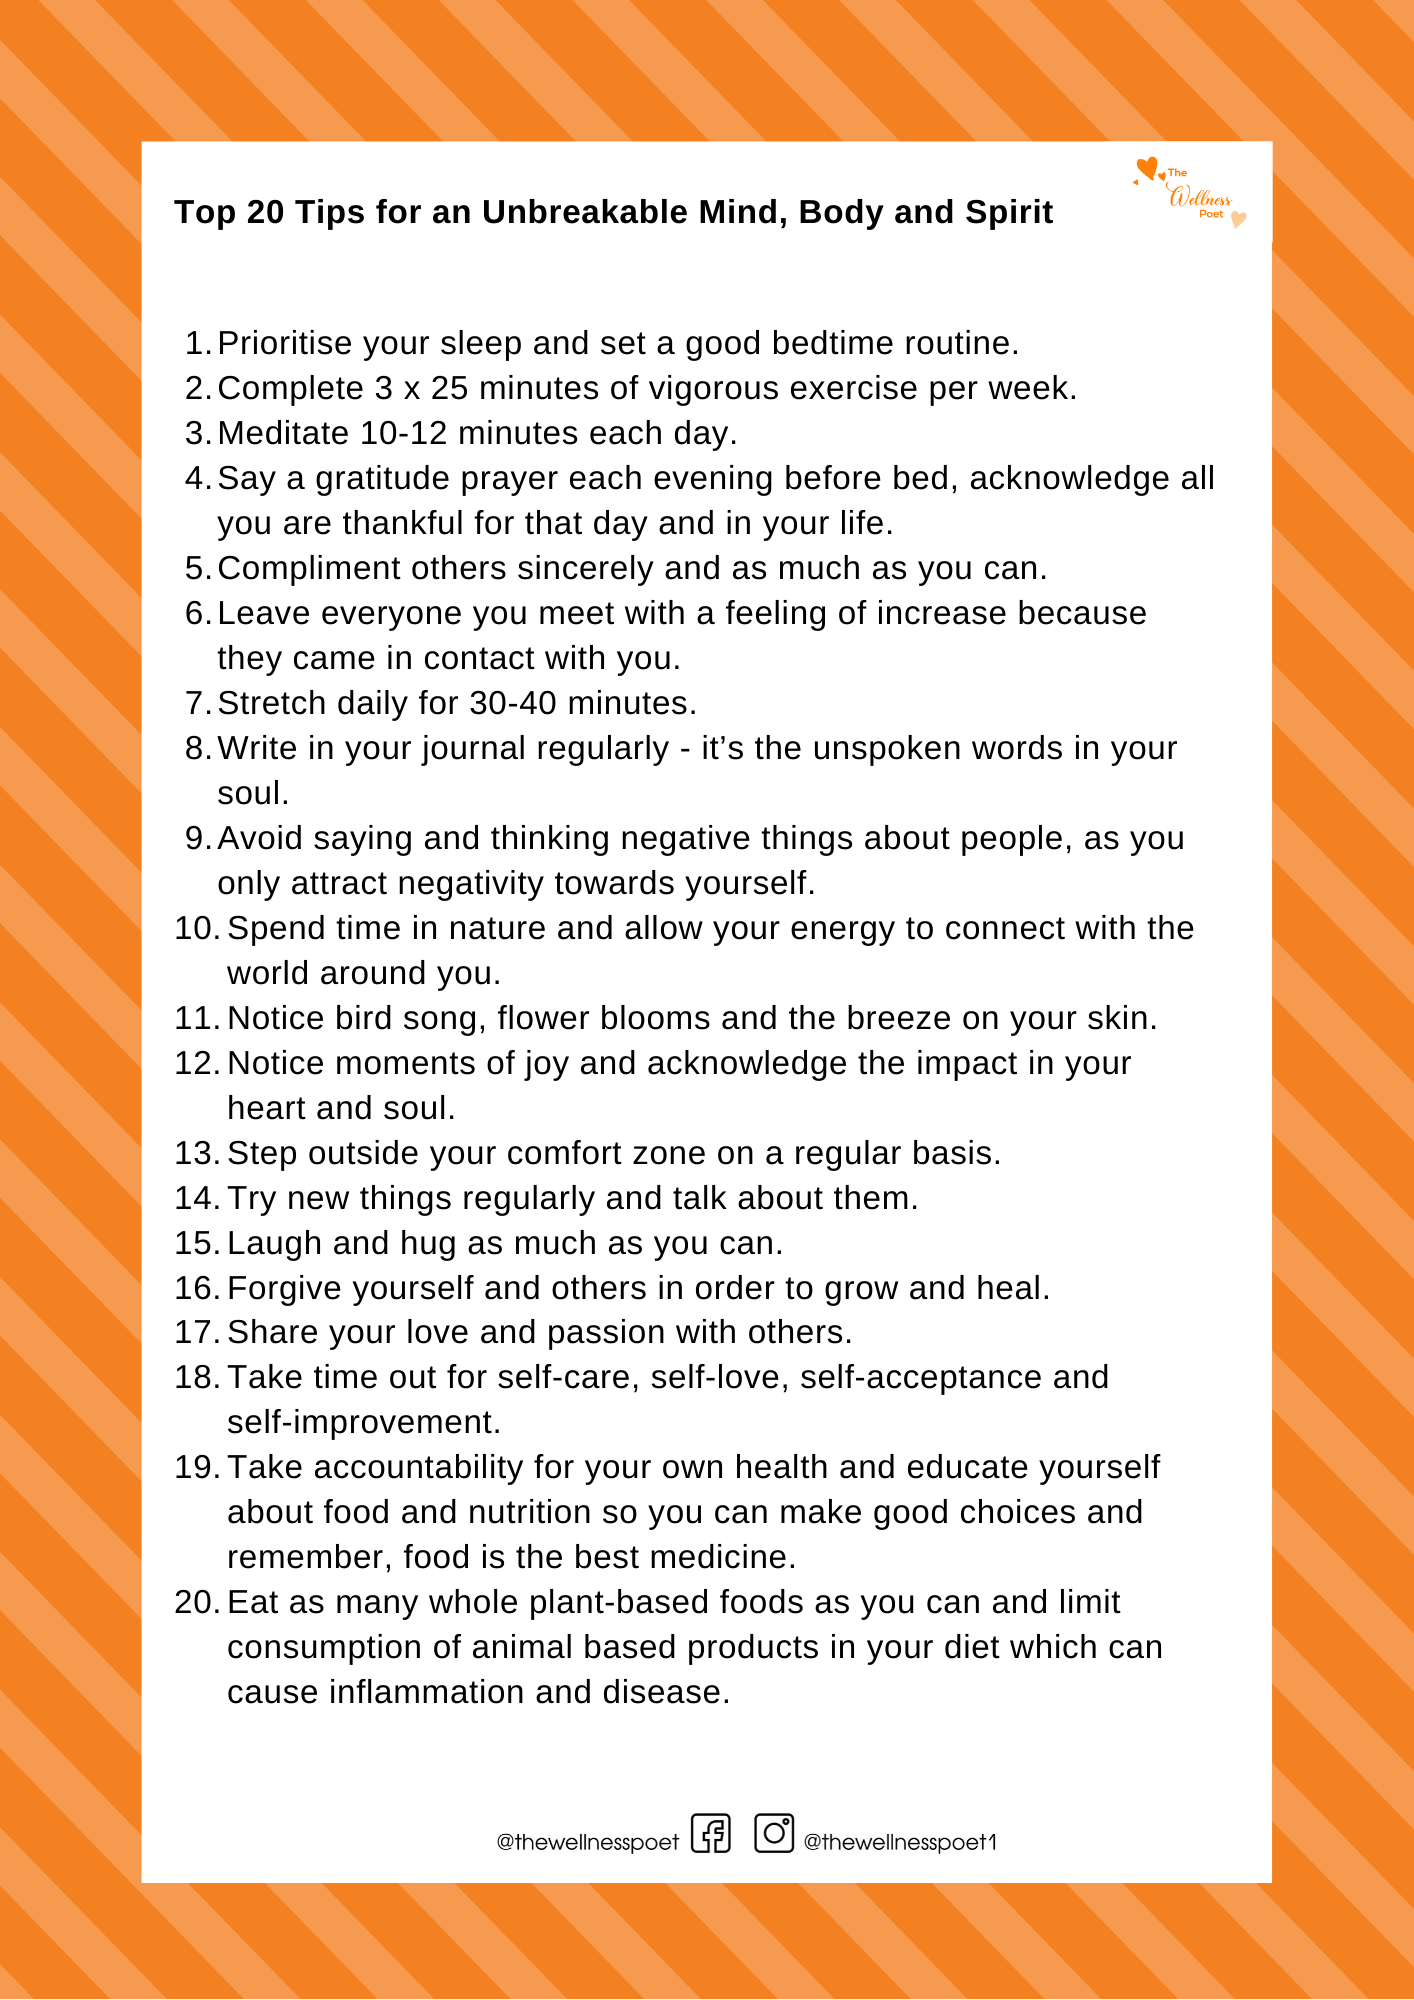 Top 20 Tips for Health and Wellbeing